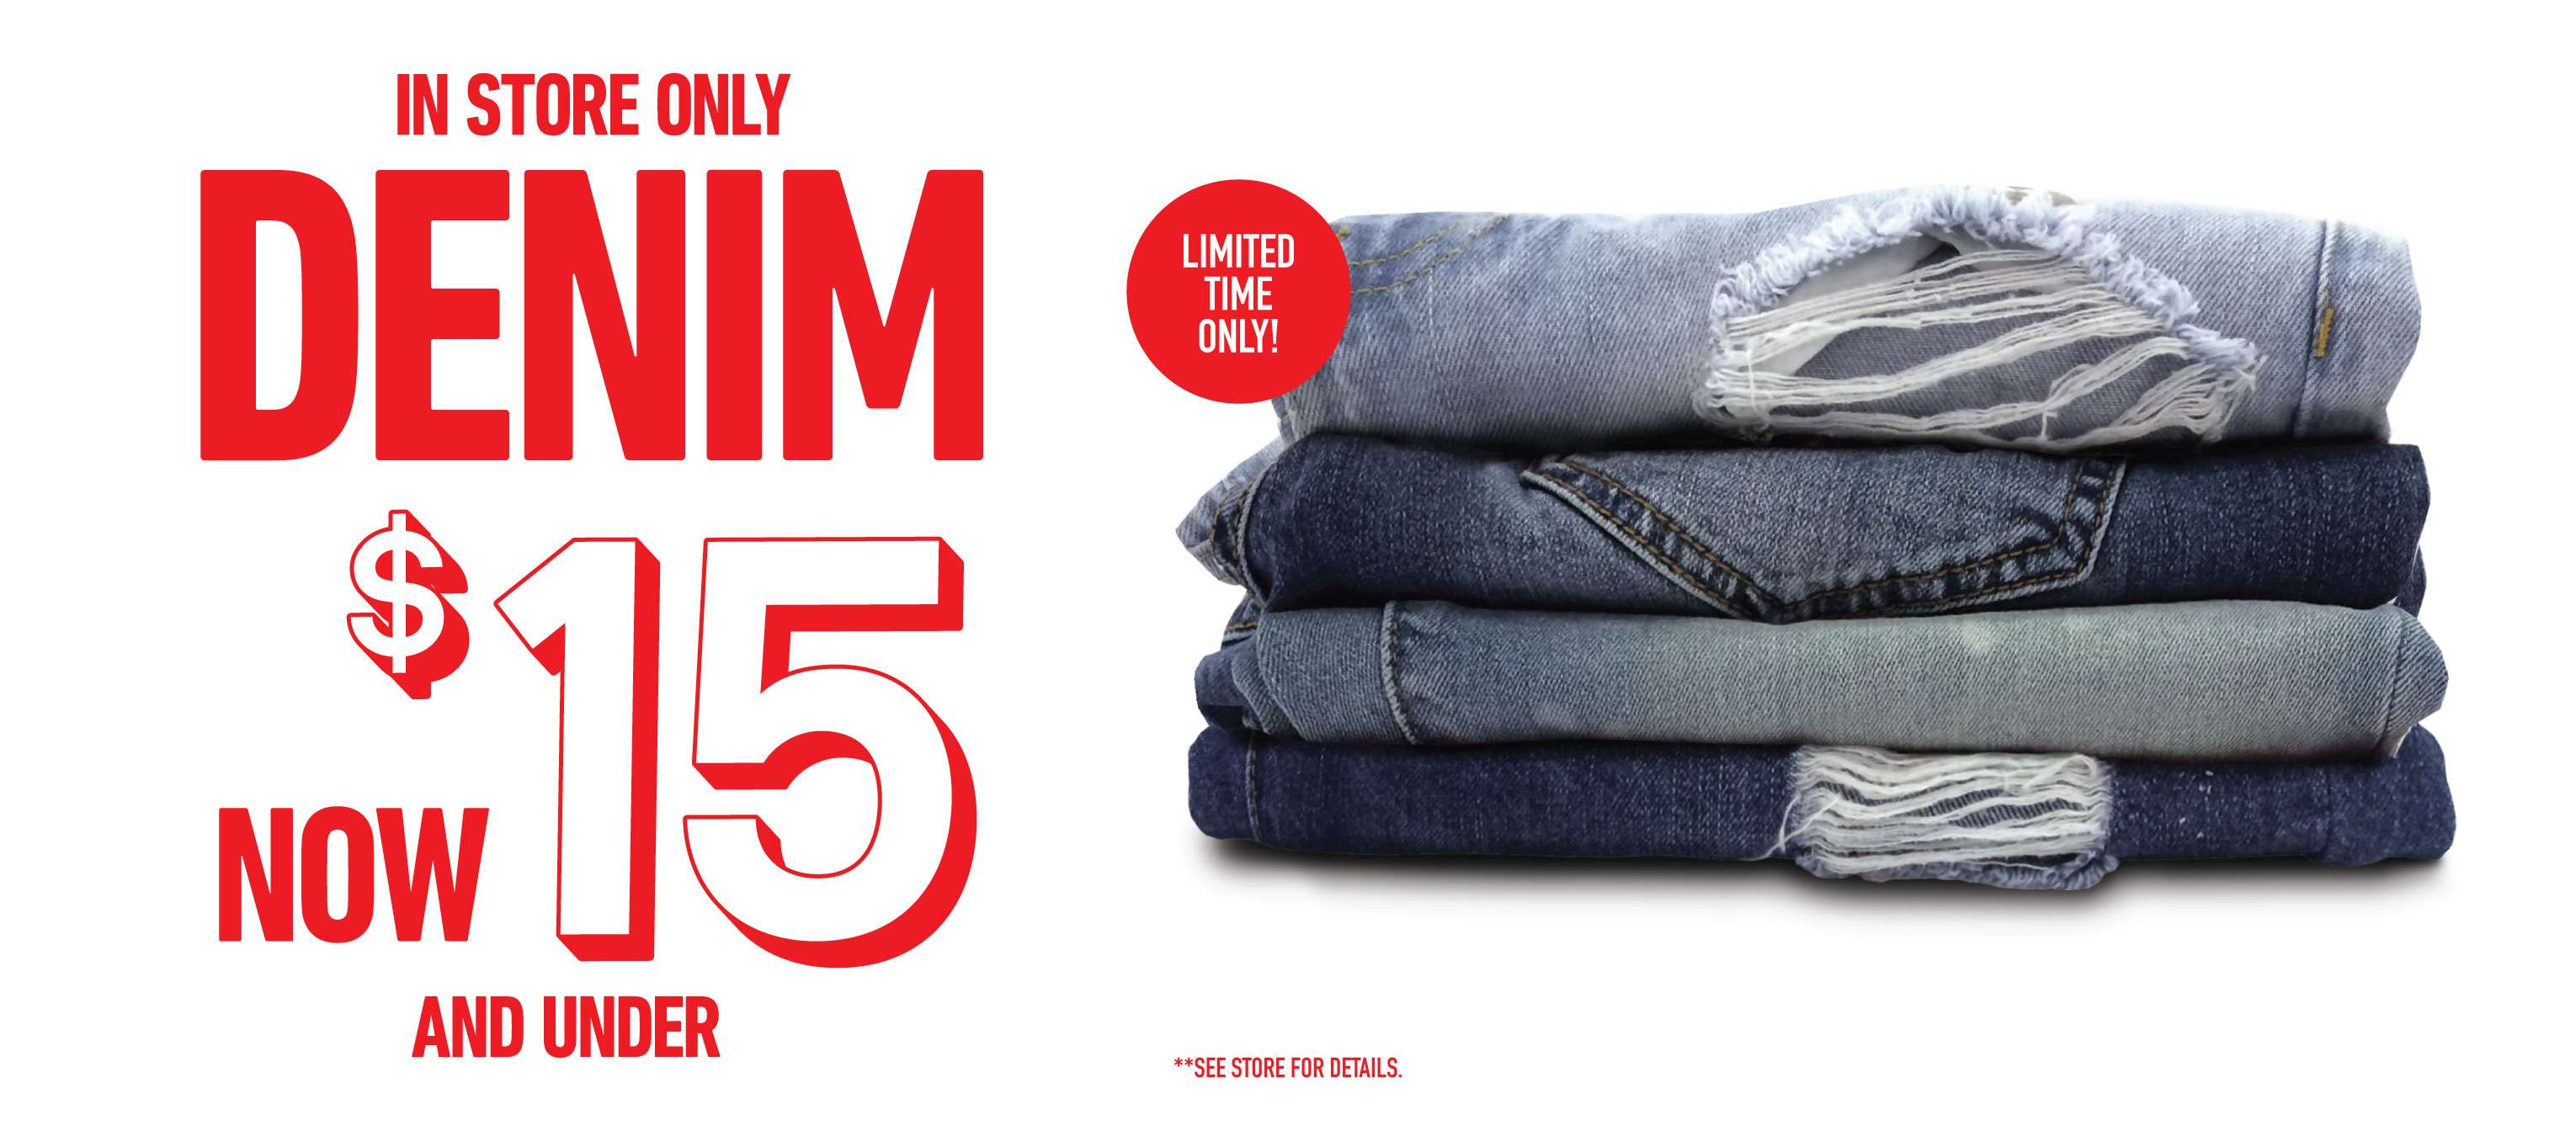 Denim Now $15